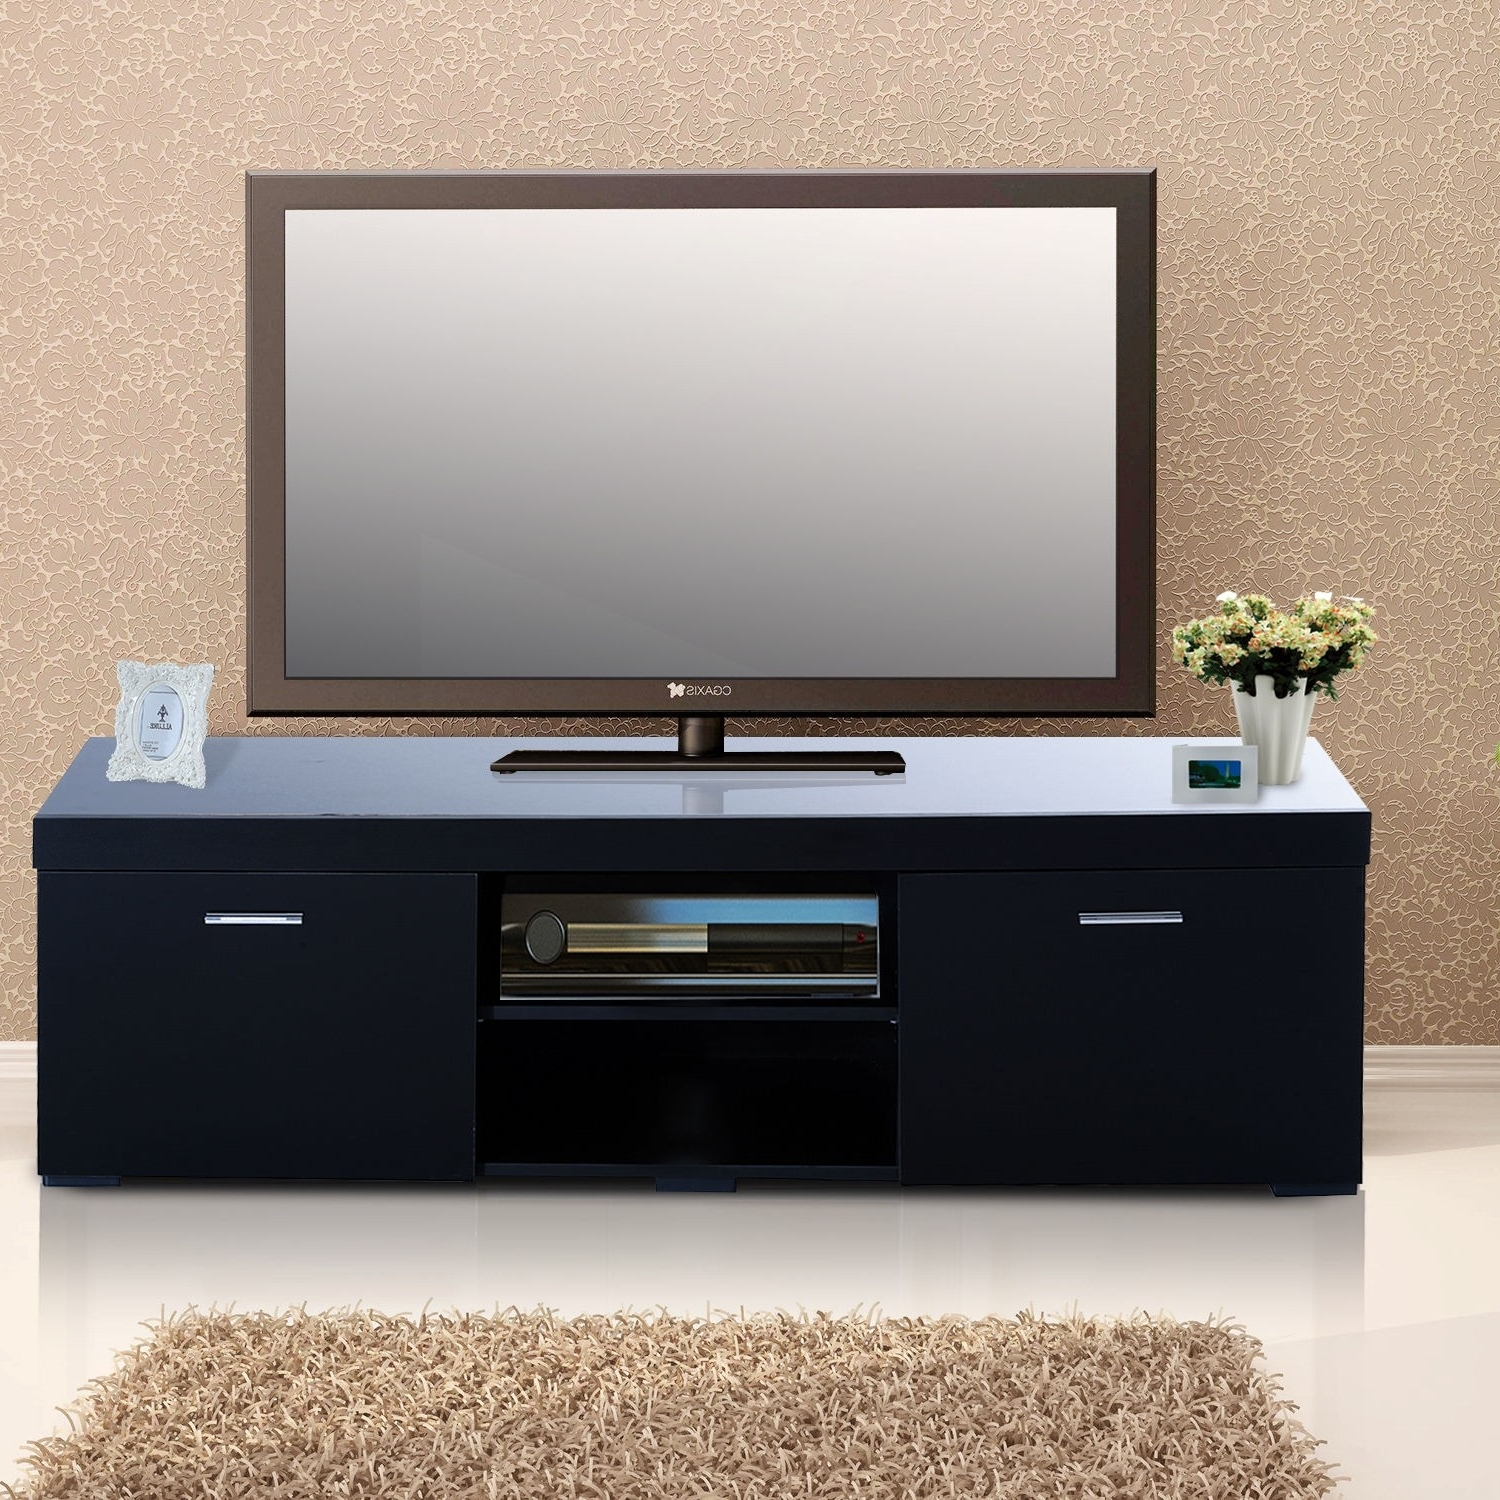 Radiator Cover Tv Stand With Regard To Well Known Homcom 2 Tier Tv Stand, 140Lx40Wx44H Cm Black (View 13 of 15)